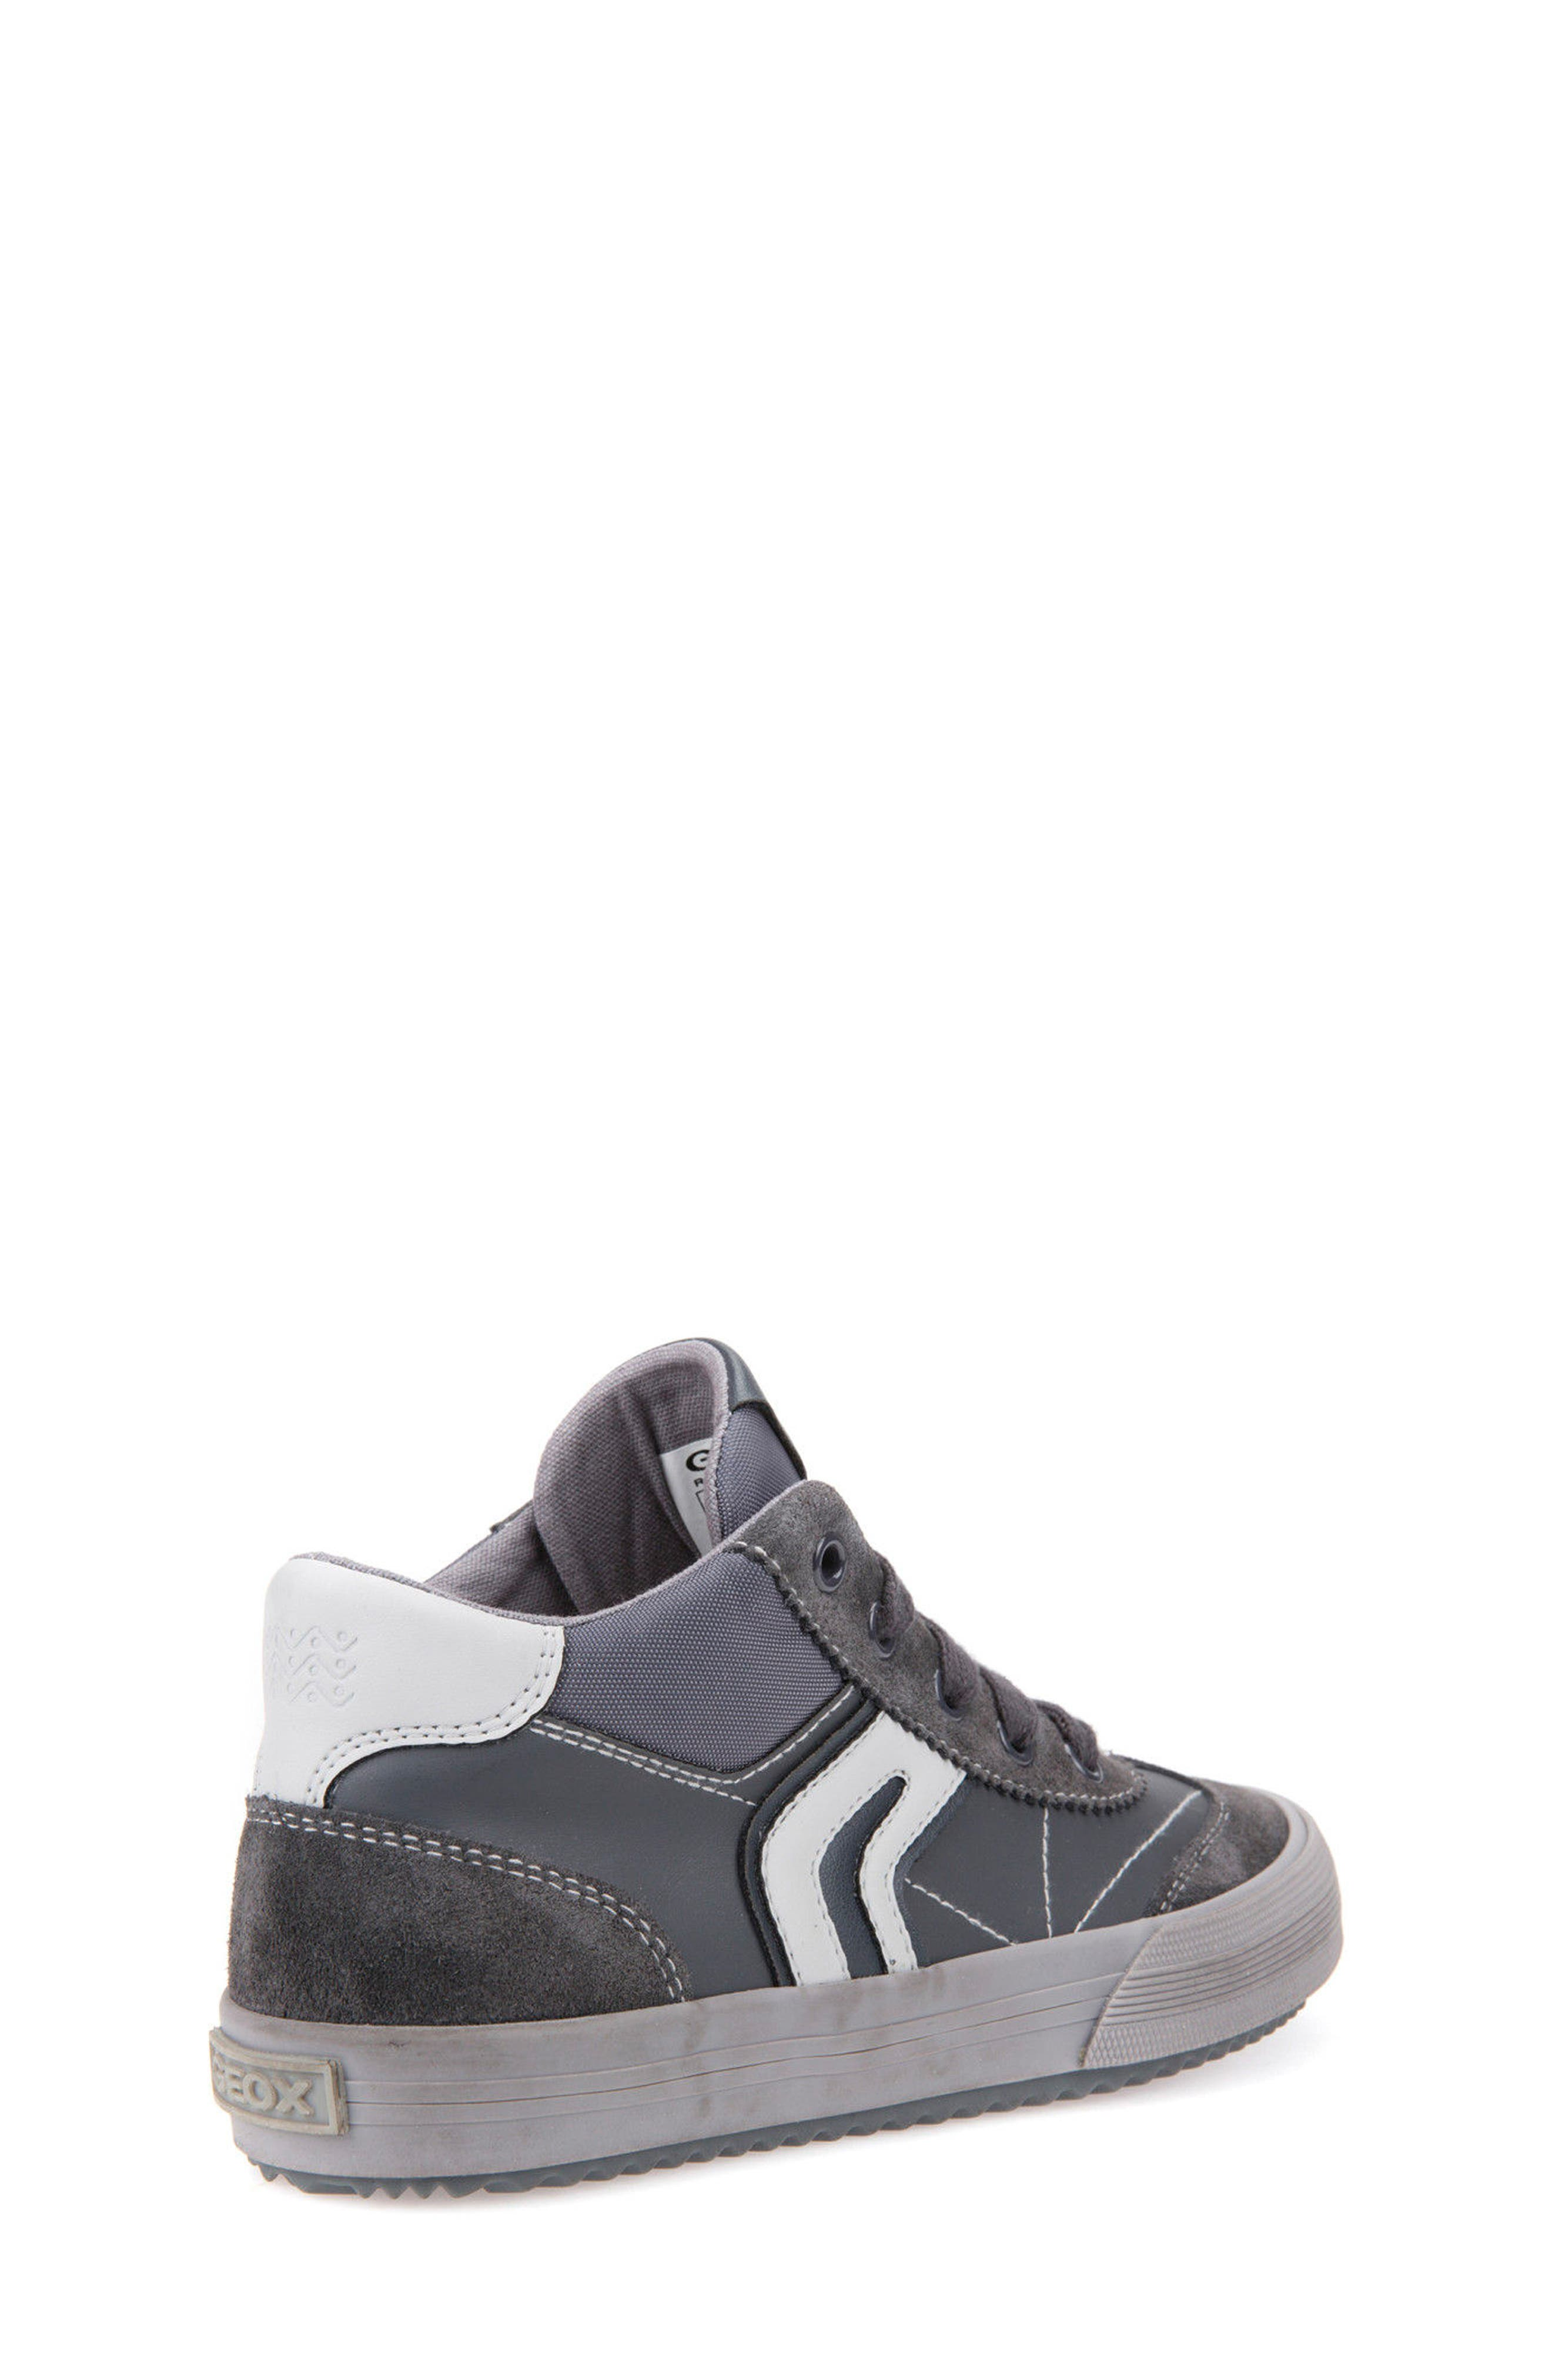 Alonisso Mid Top Sneaker,                             Alternate thumbnail 8, color,